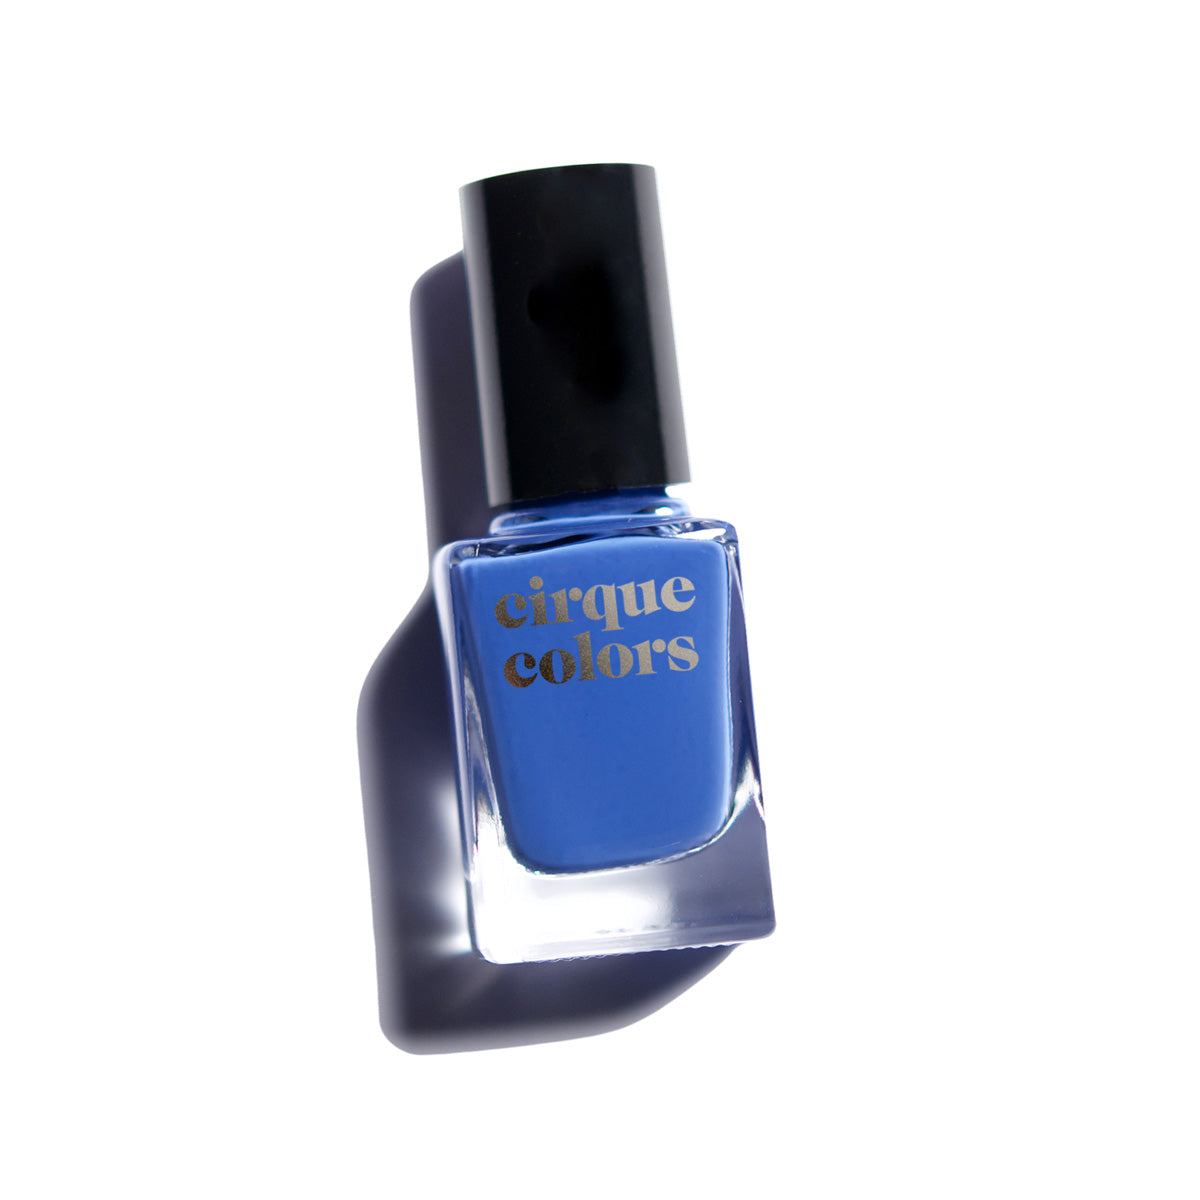 Cirque Colors - Hudson (discontinued - last chance)